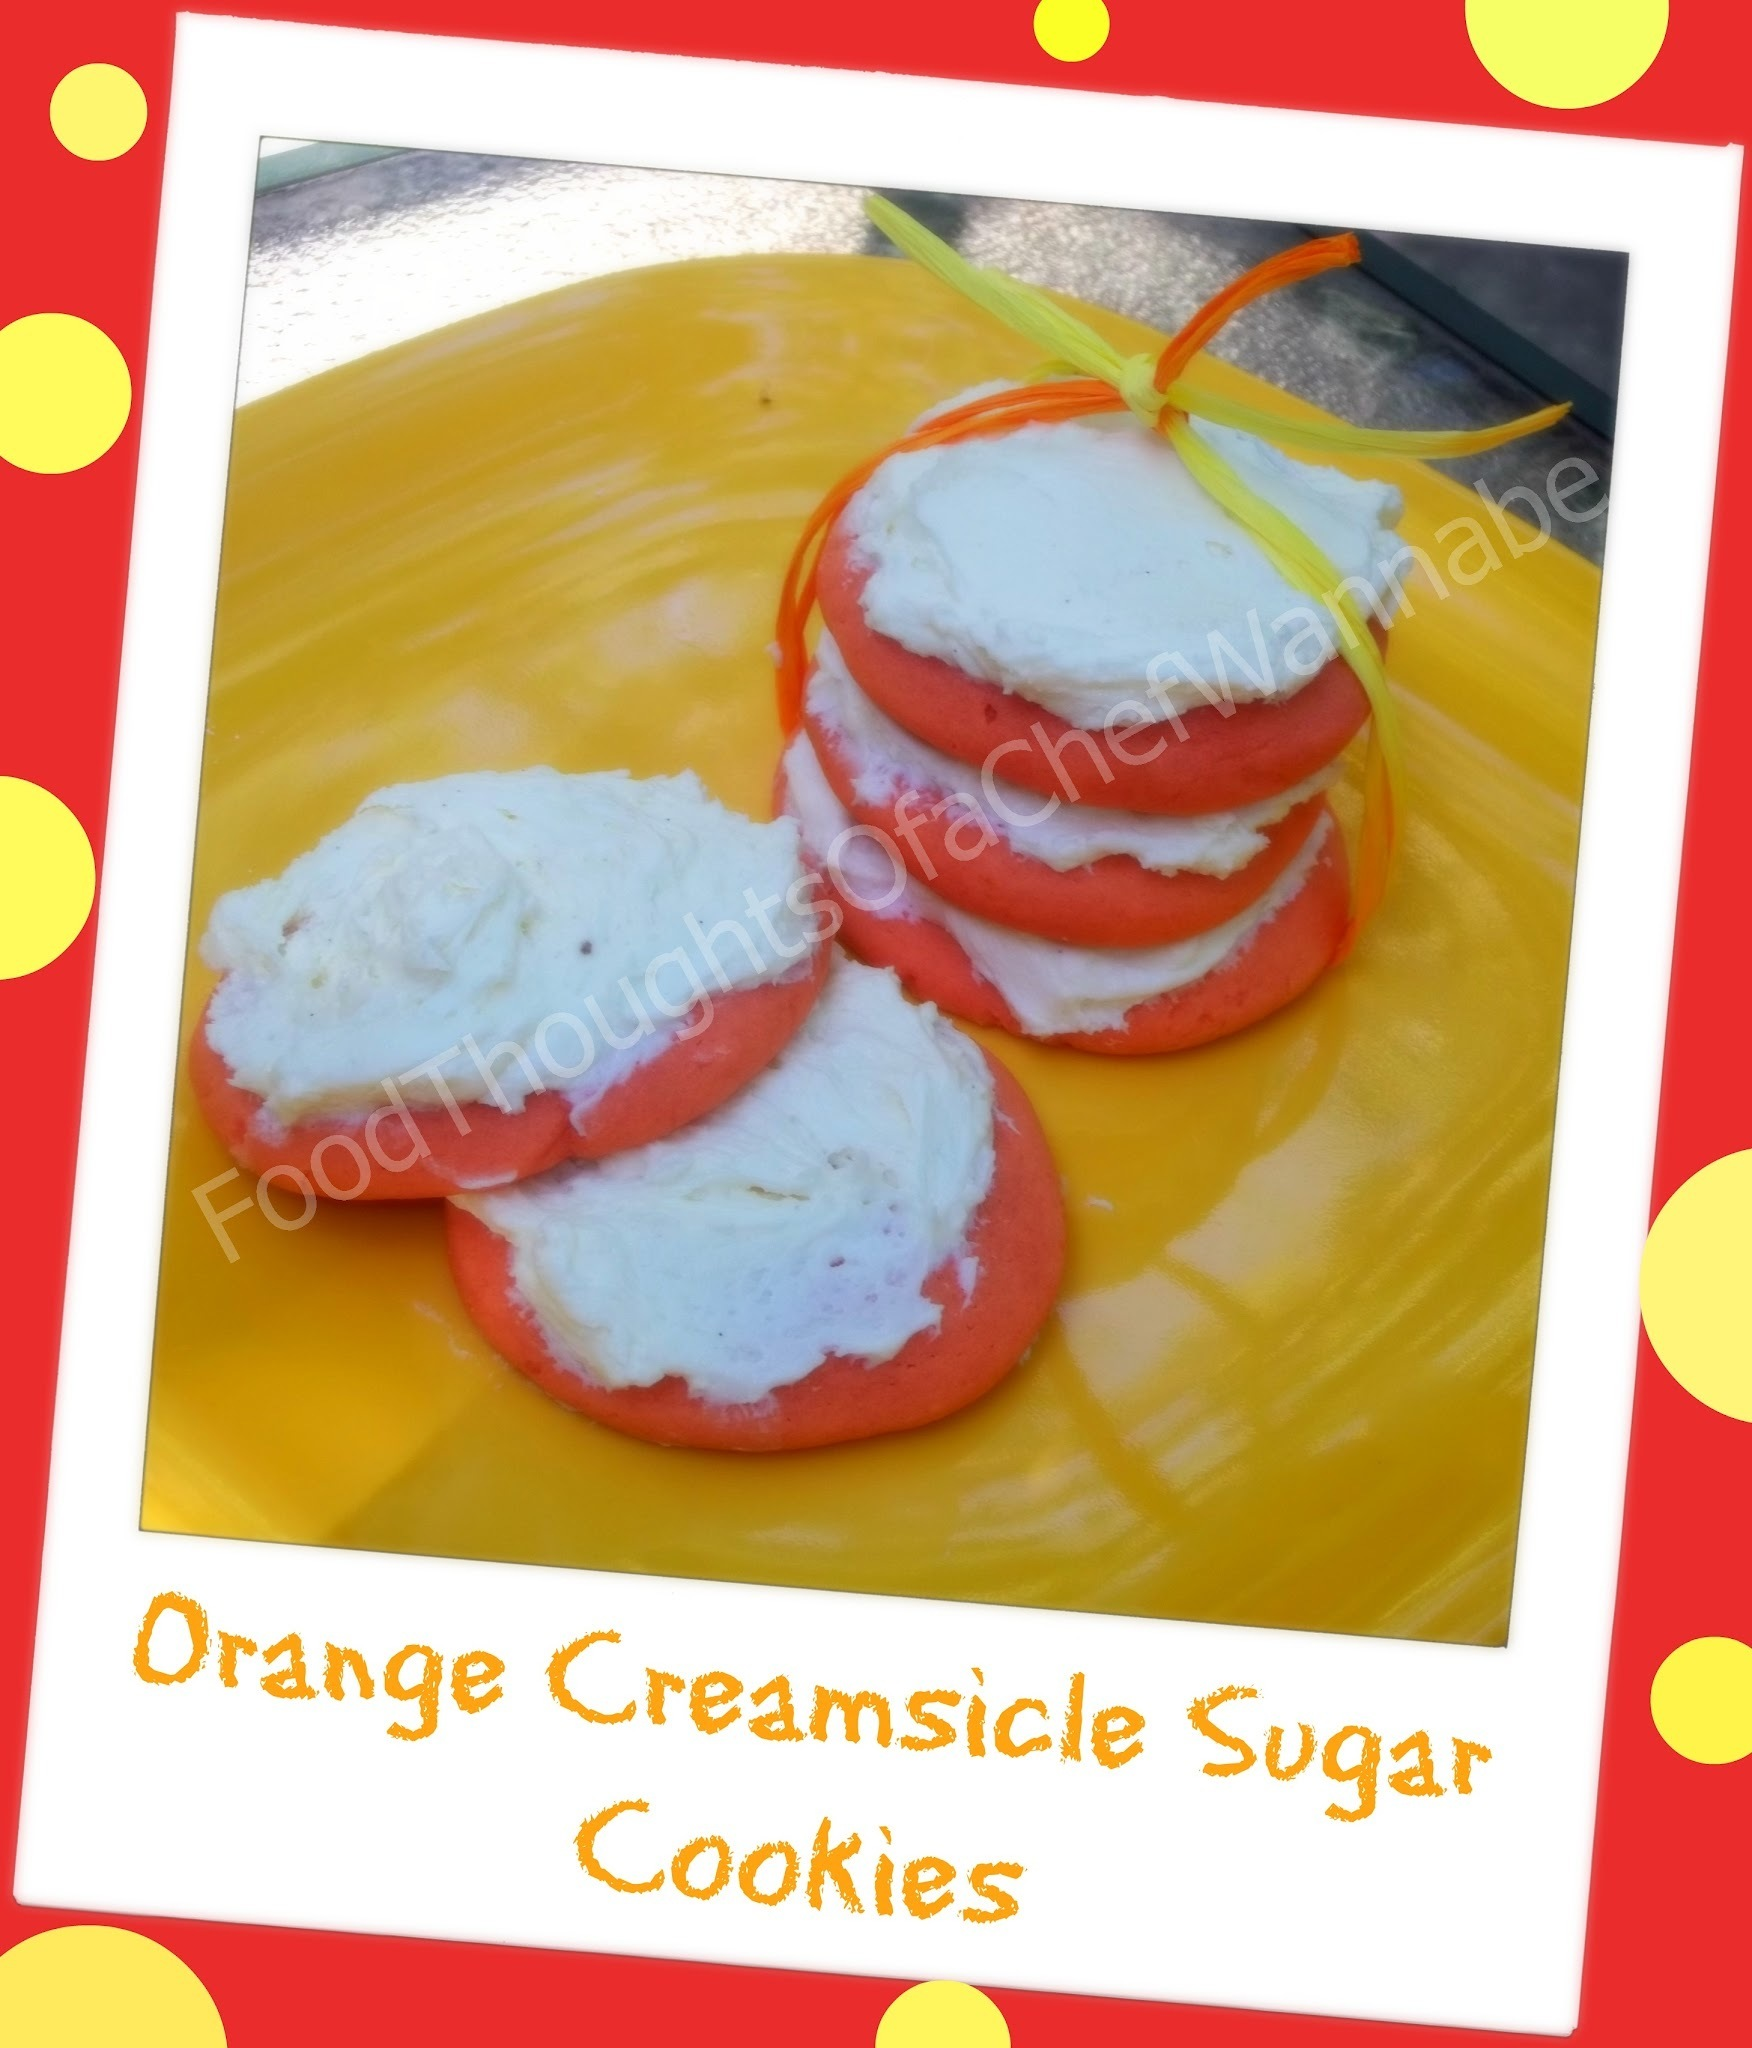 Orange Creamsicle Sugar Cookies!